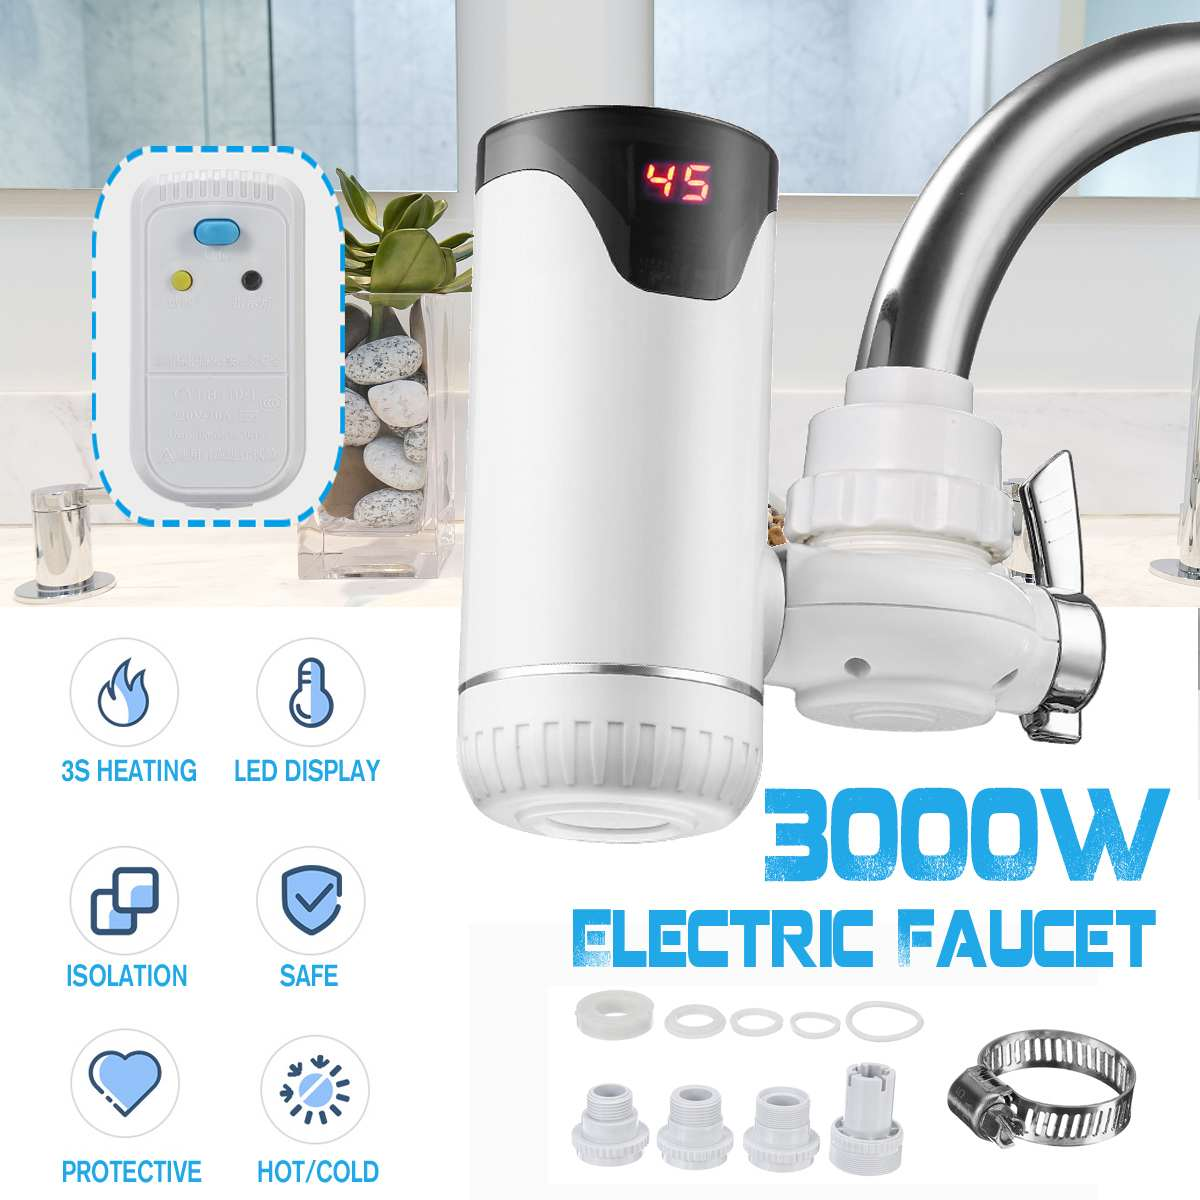 30s Instant Tankless Electric Kitchen Water Heater Tap Fast Heating Hot Cold Warm Water Digital Display Leakage Protector